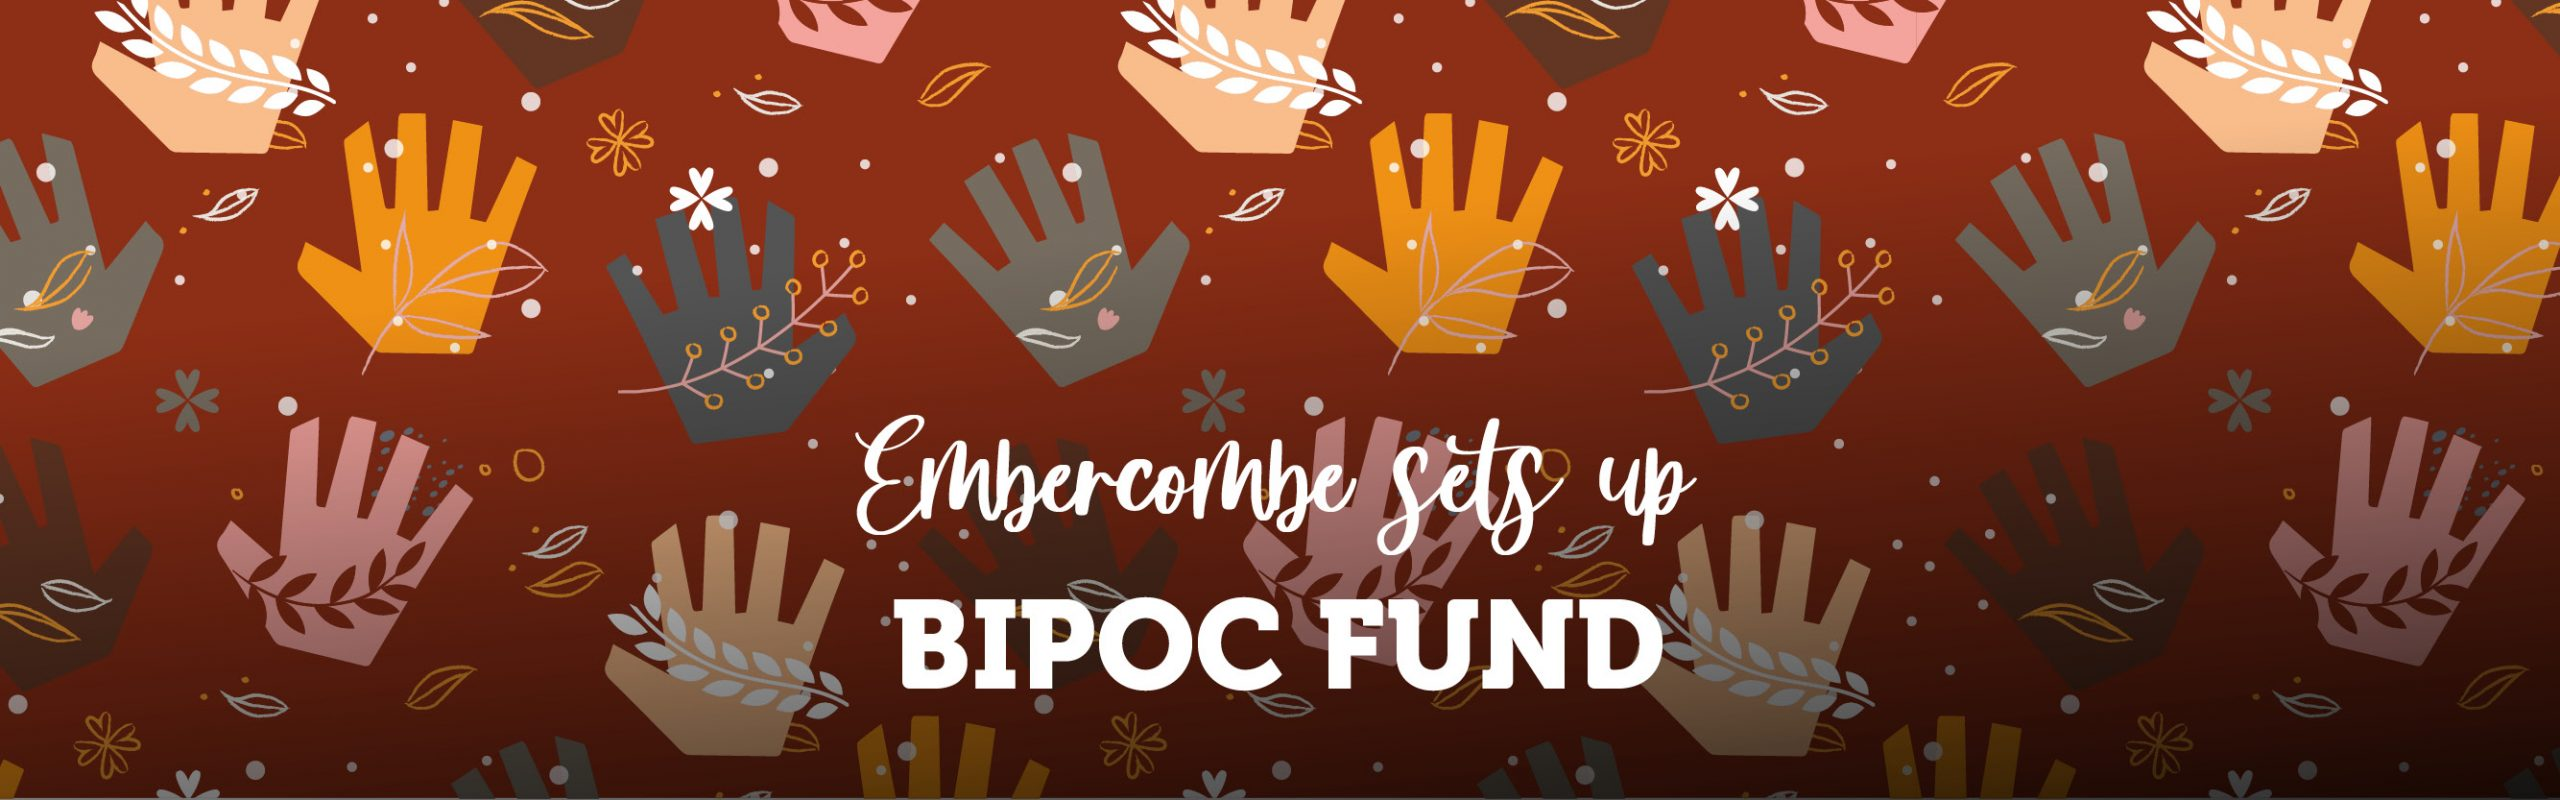 Embercombe launches BIPOC fund